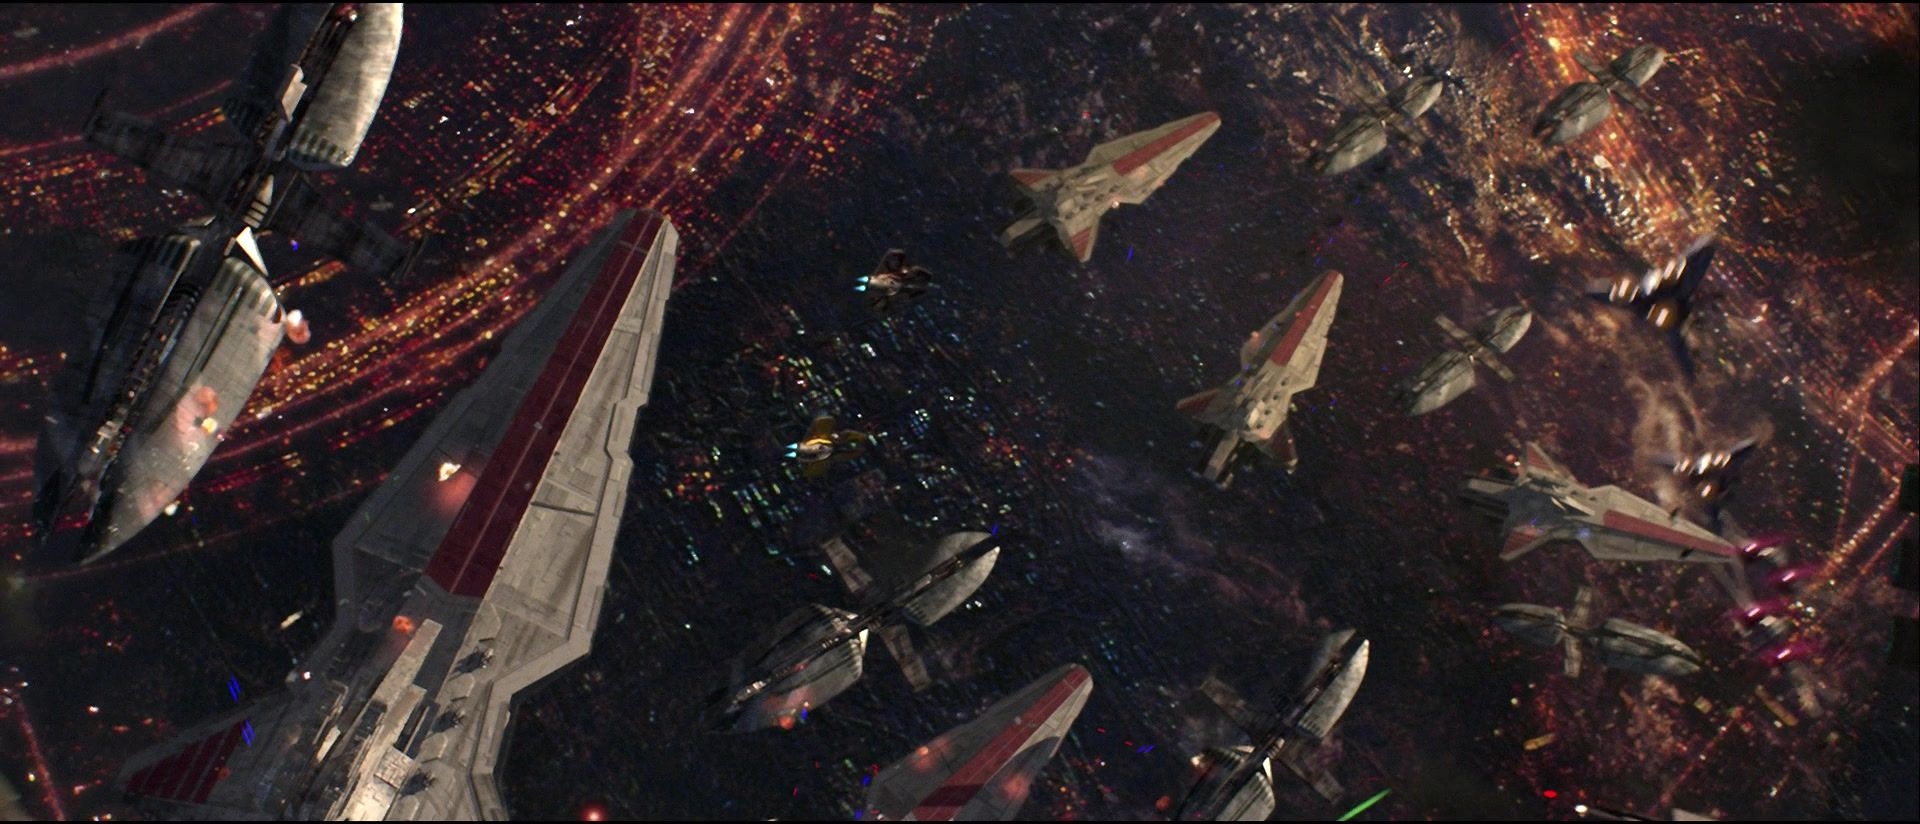 Screencap And Image For Star Wars Episode Iii Revenge Of The Sith Fancaps Net